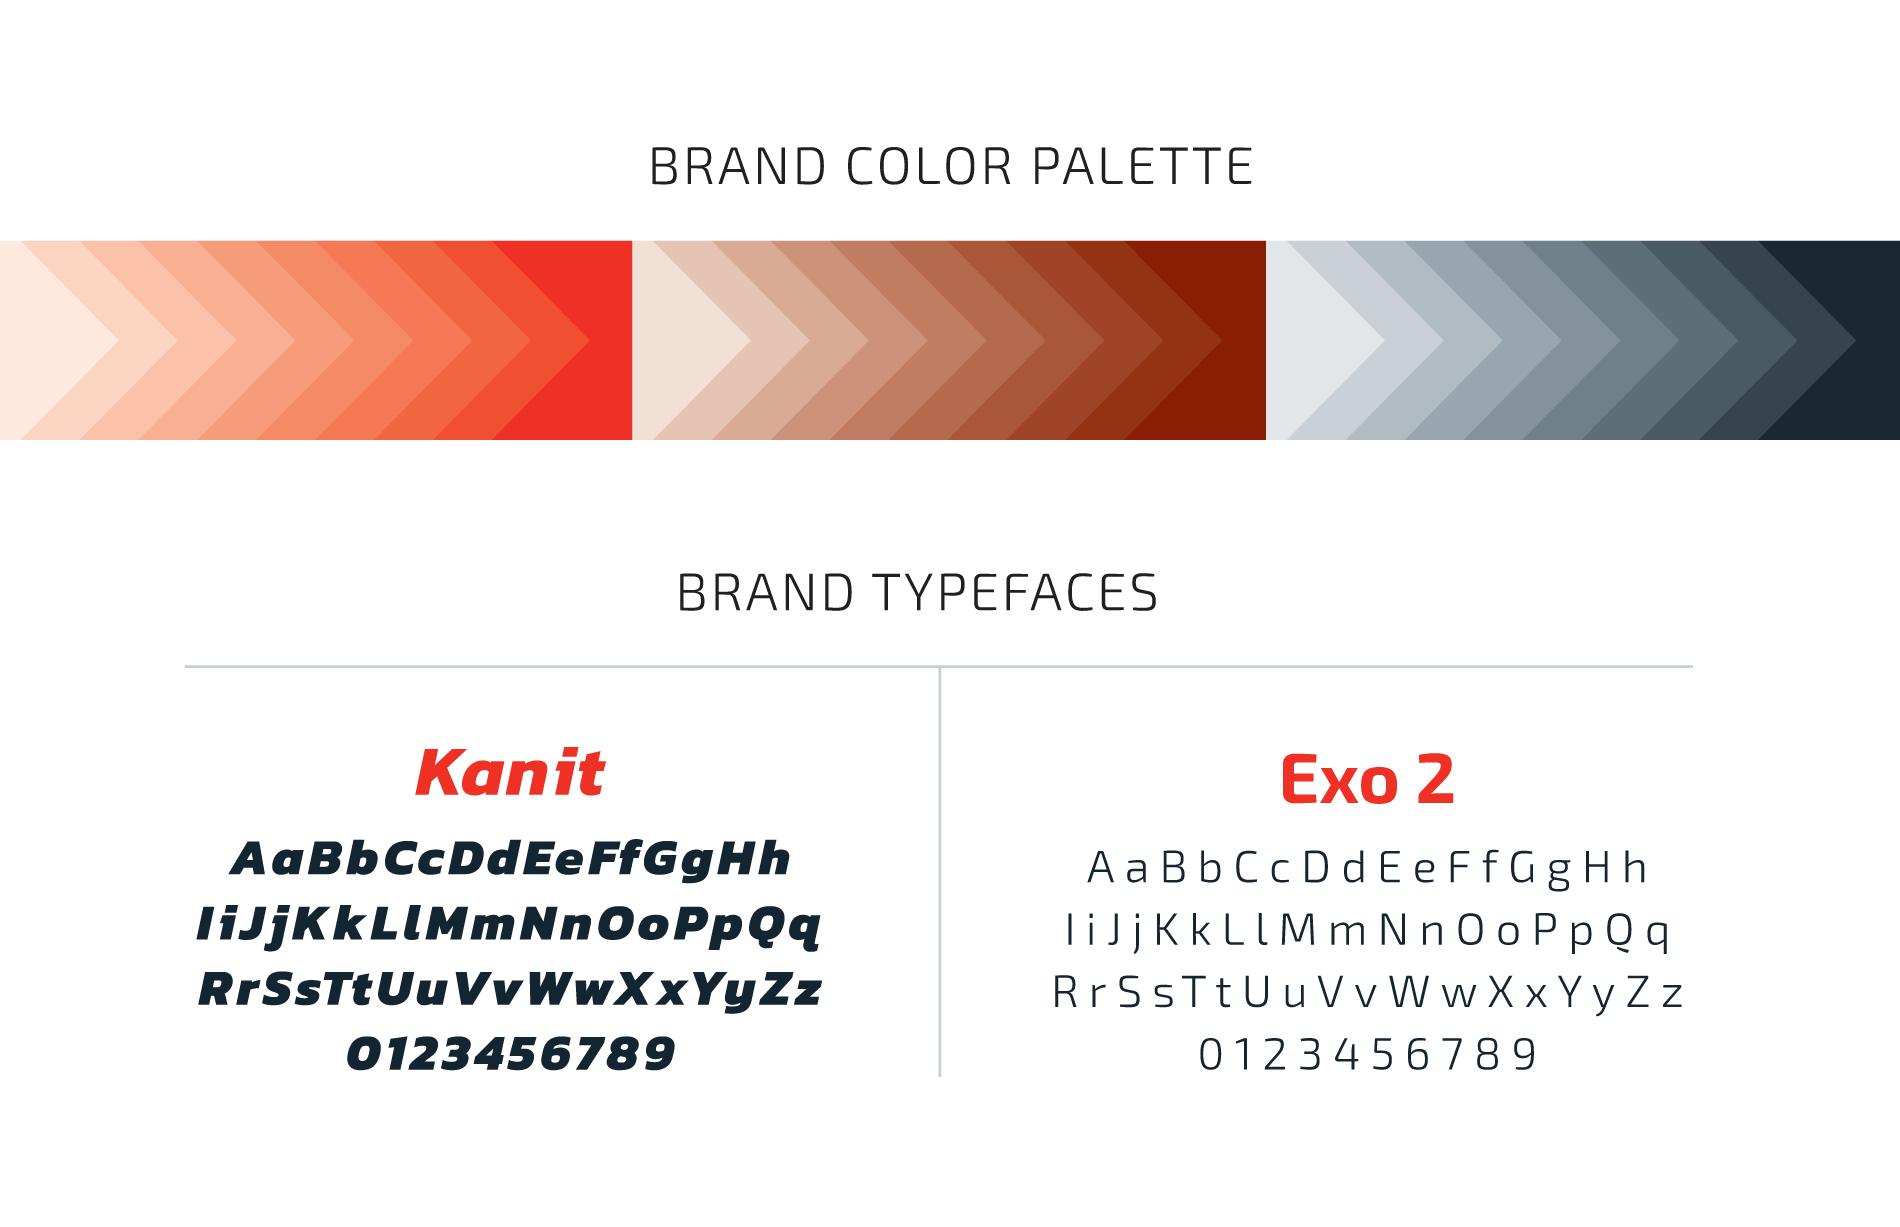 HiTek brand colors and typefaces